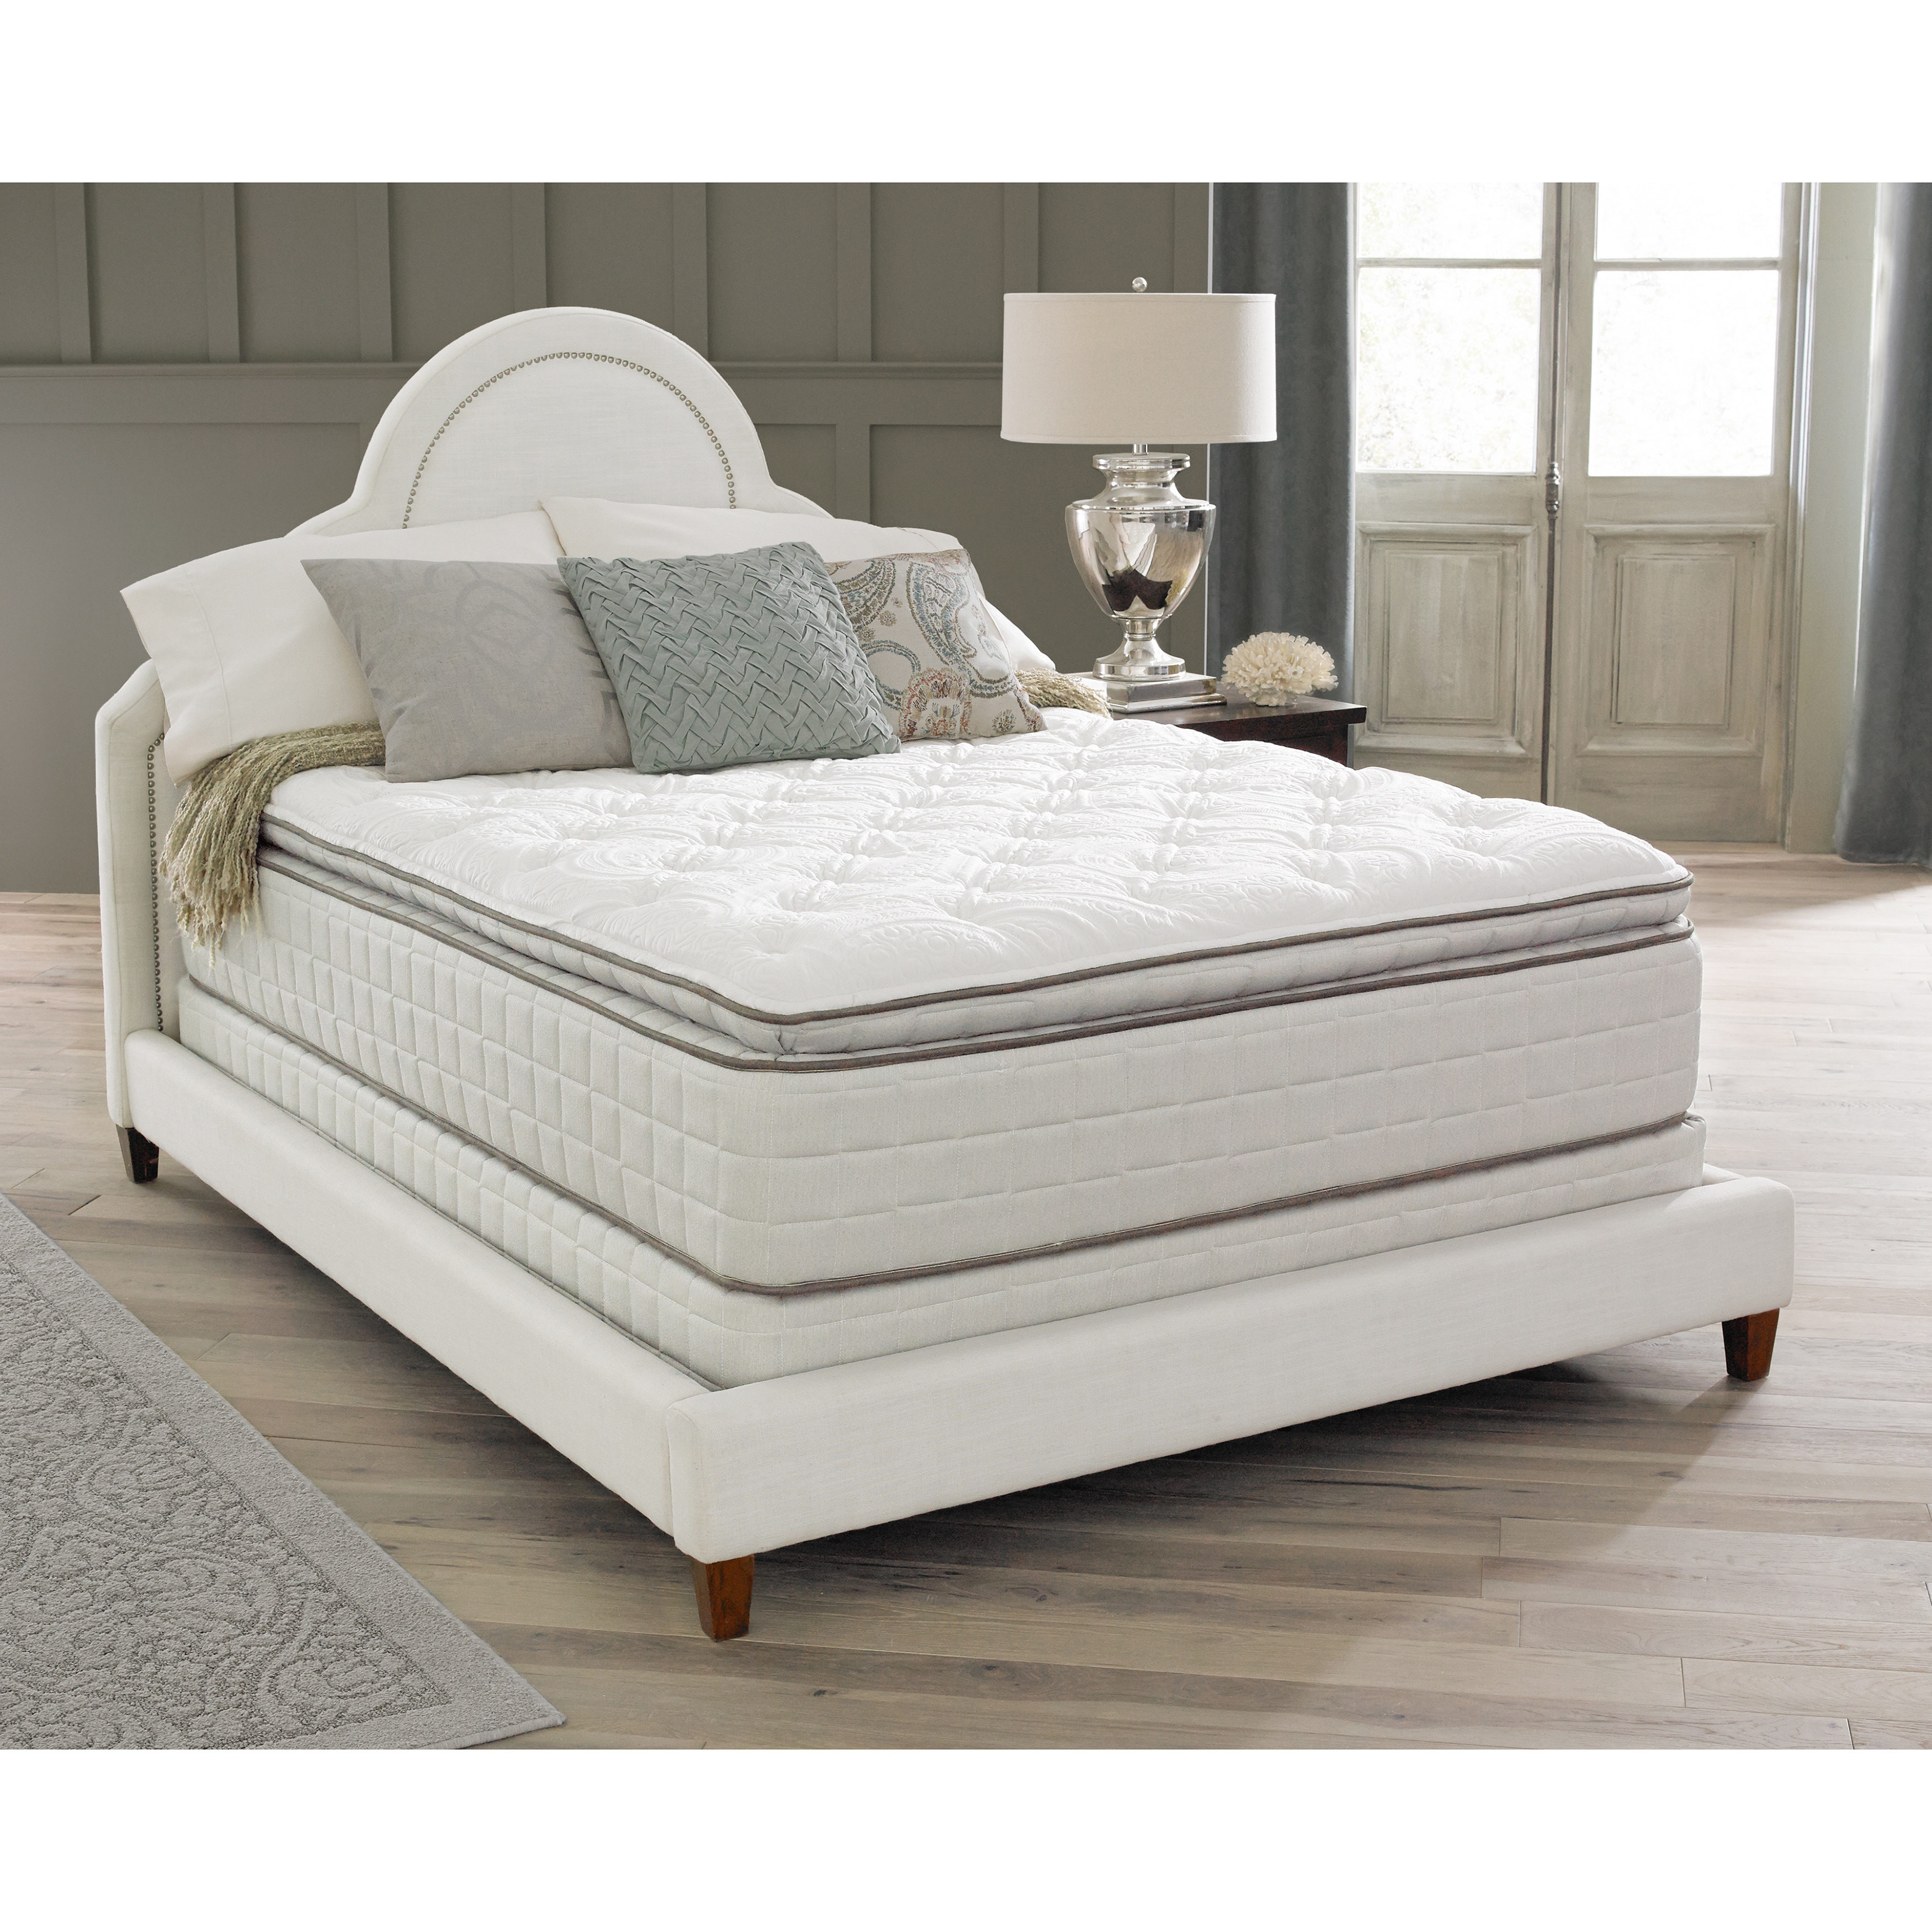 perfect serta mattress sharpen top sleeper pillowtop wynstone pillow wid itm plush a king qlt ebay the op ii super